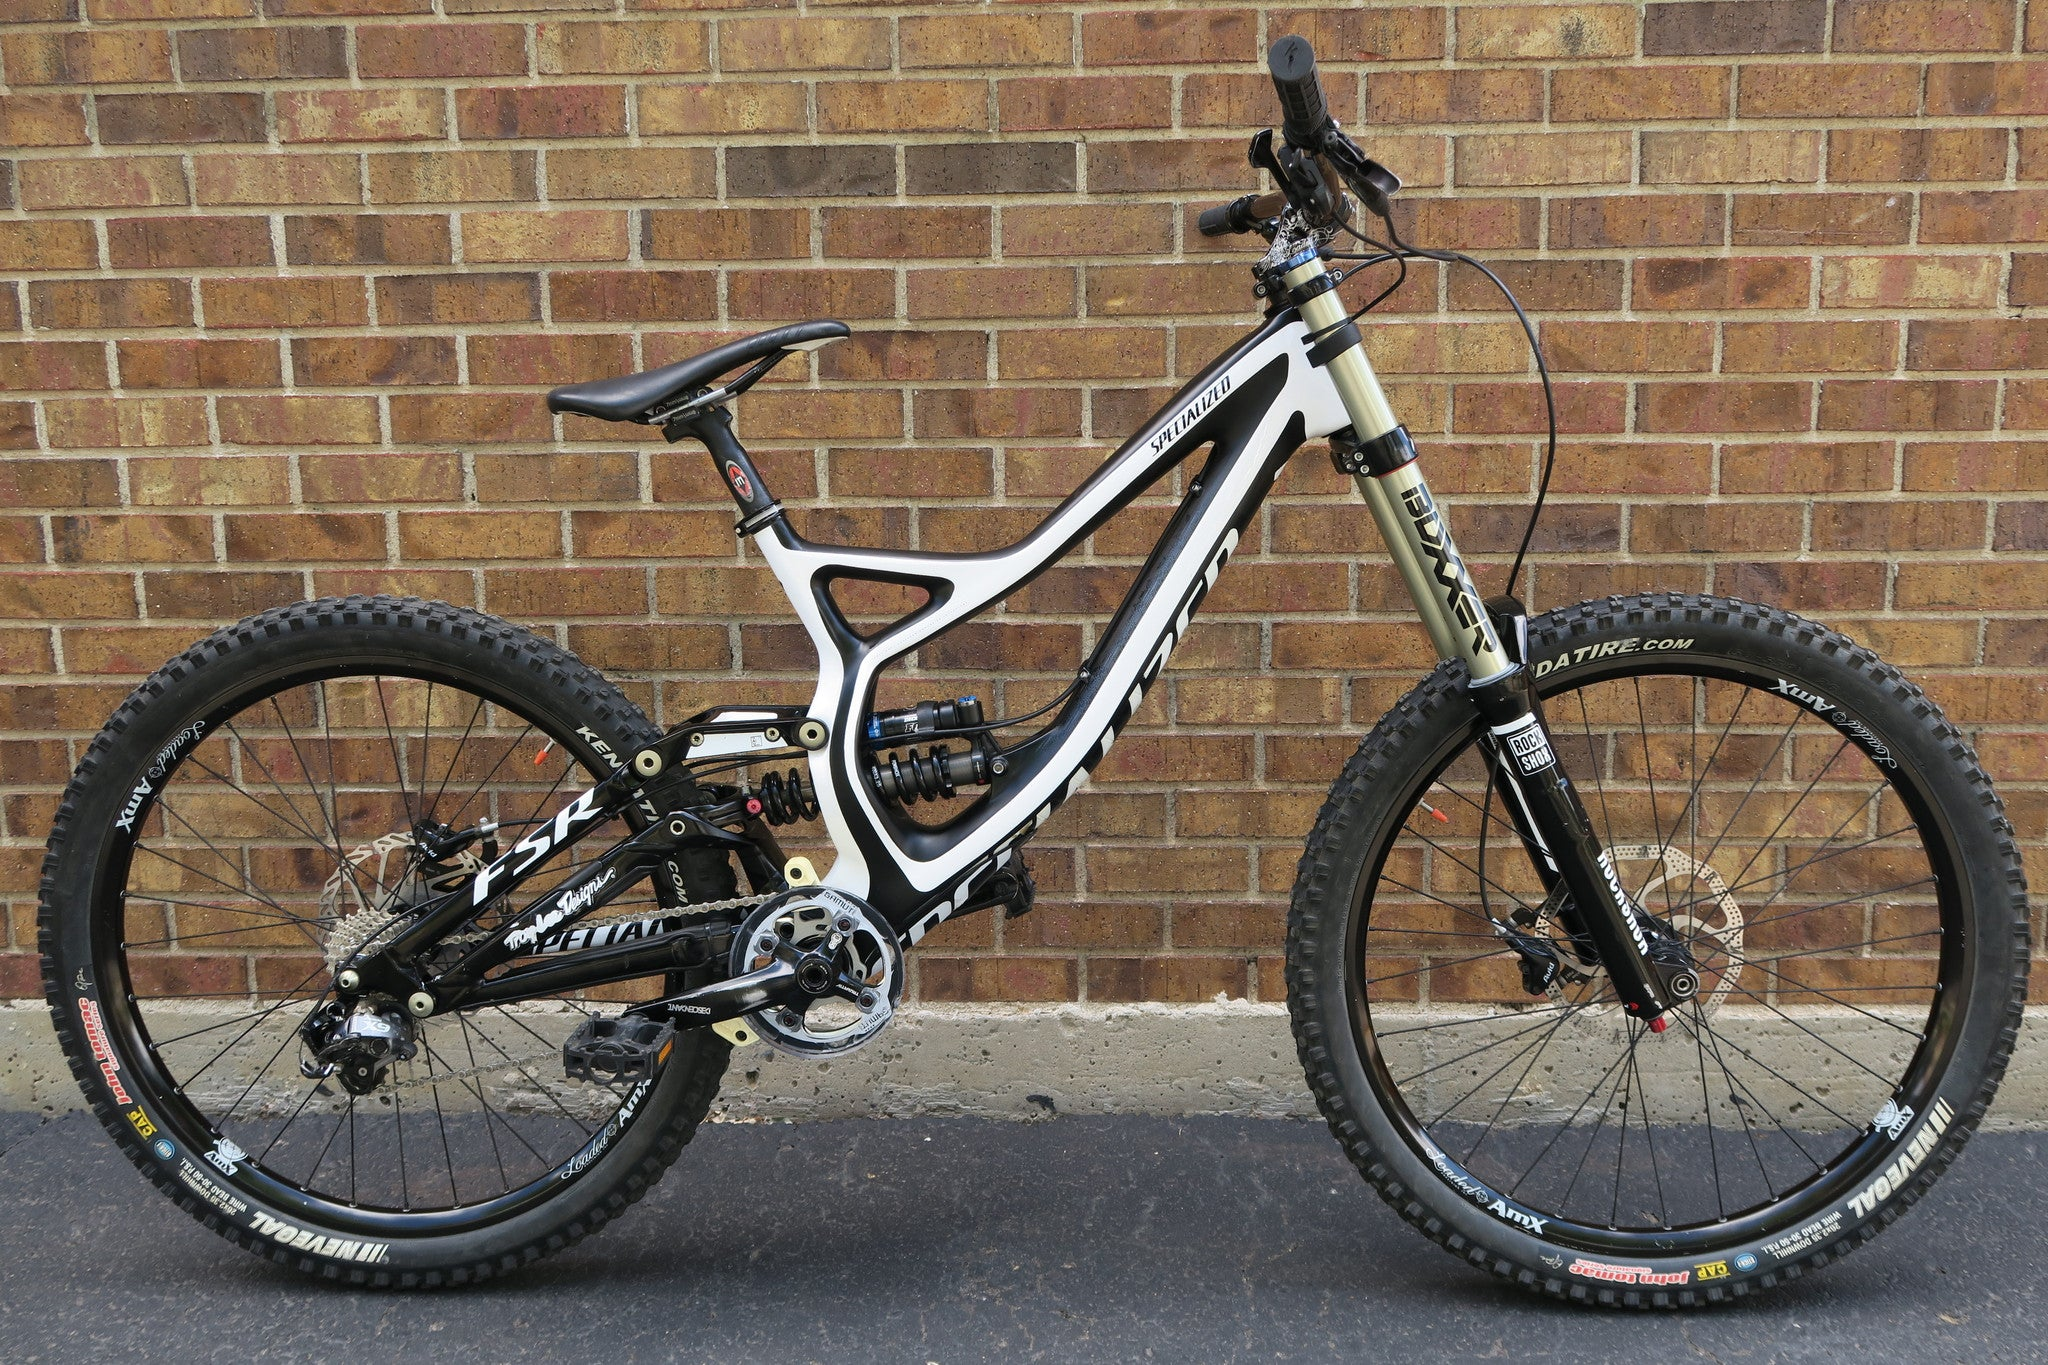 2013 SPECIALIZED DEMO 8 1 CARBON